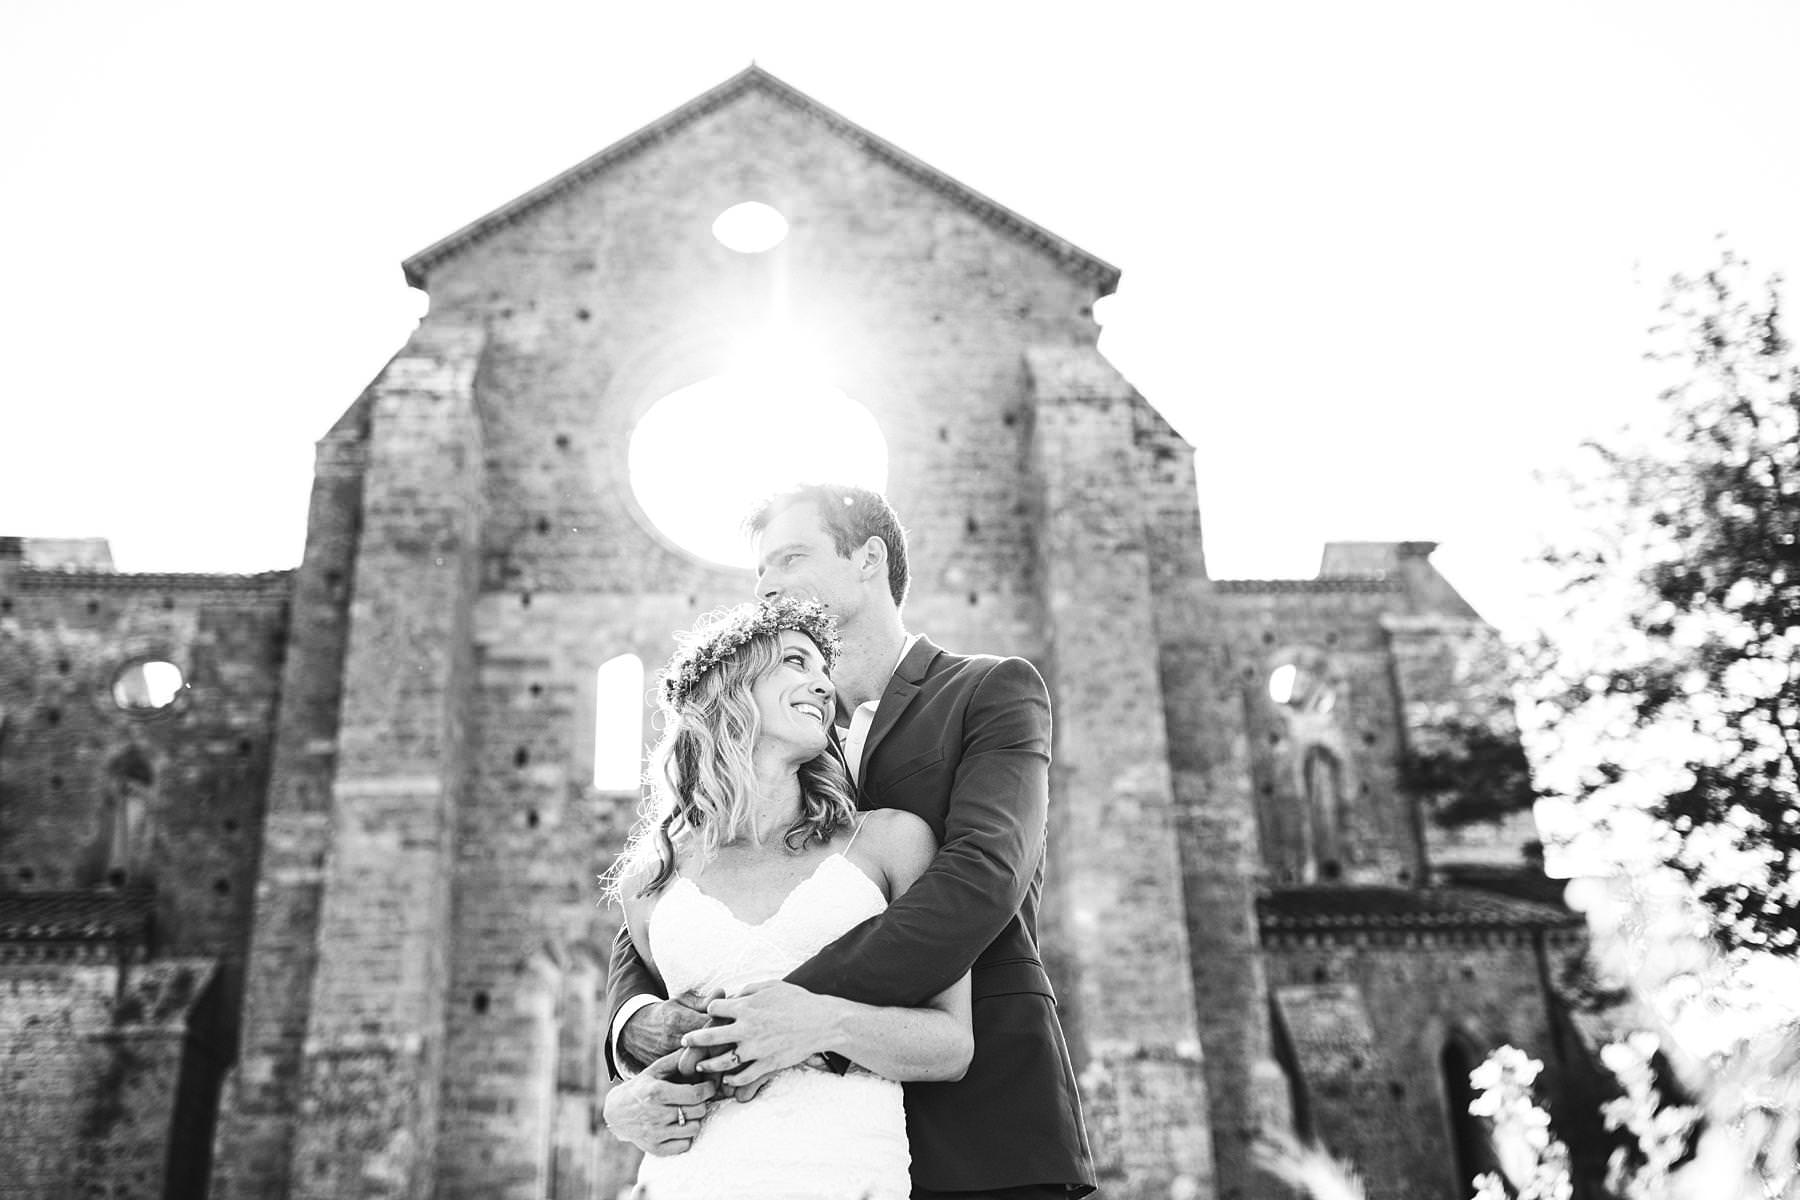 Small wedding in Italy in the breathtaking San Galgano Abbey in Tuscany. When youÕre planning your longed-for, small wedding in Italy and you want to be absolutely unforgettable, you should consider finding a unique location. Not only your guests will be left speechless, but you will say ÒI doÓ immersed in complete beauty - the same beauty that will appear in the photos that you are going to treasure forever